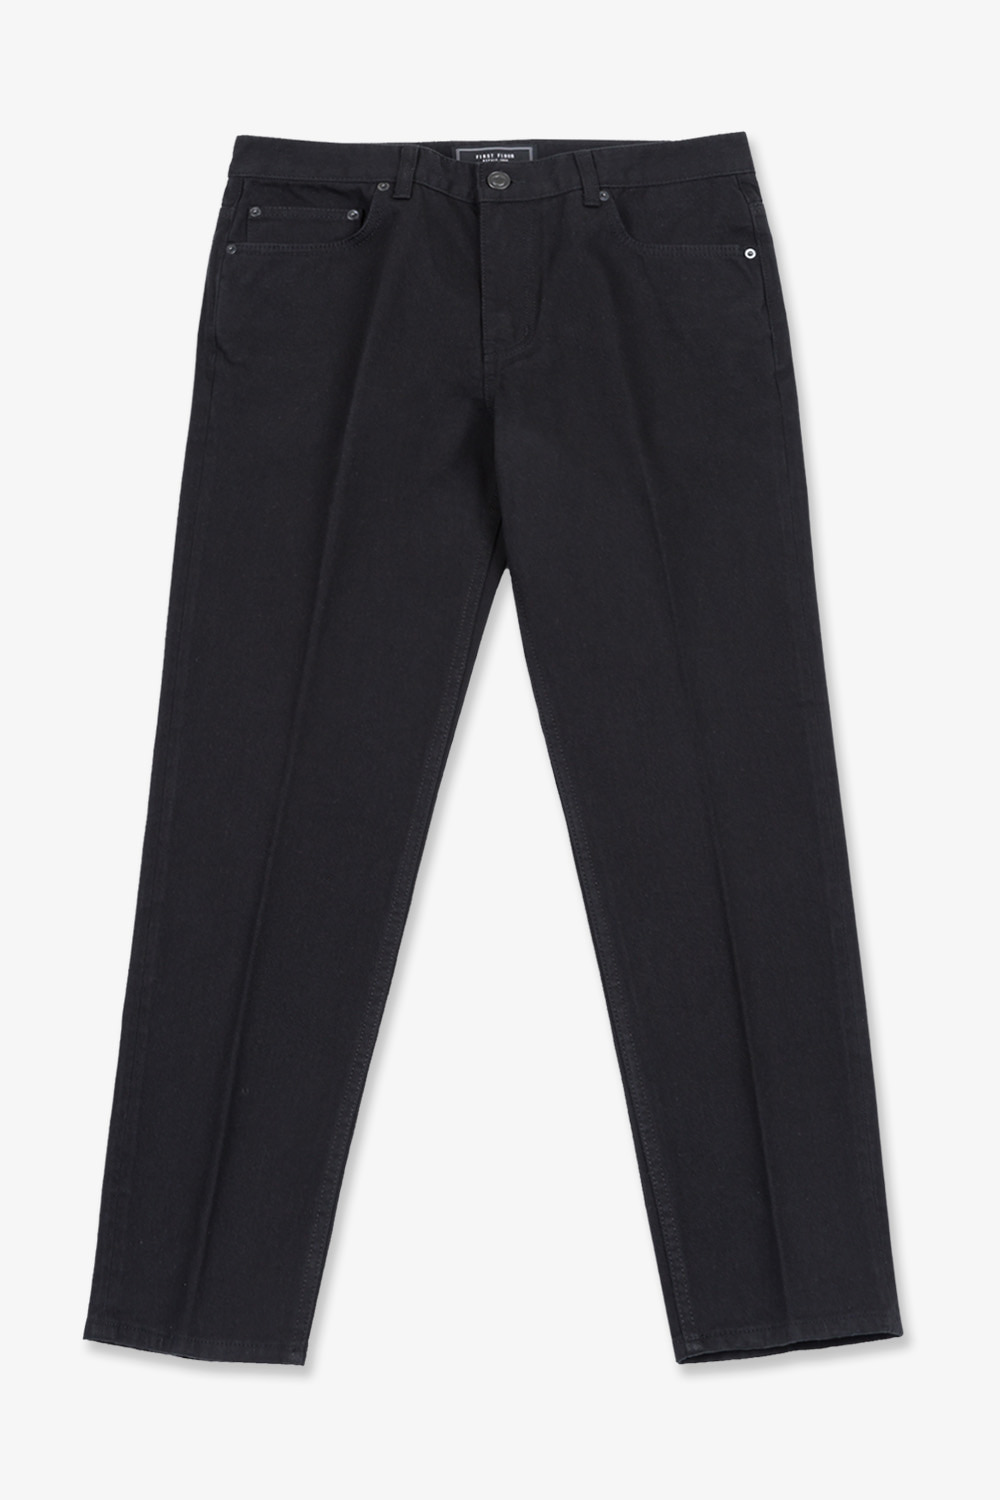 EASYGOING CROP PANTS (BLACK)